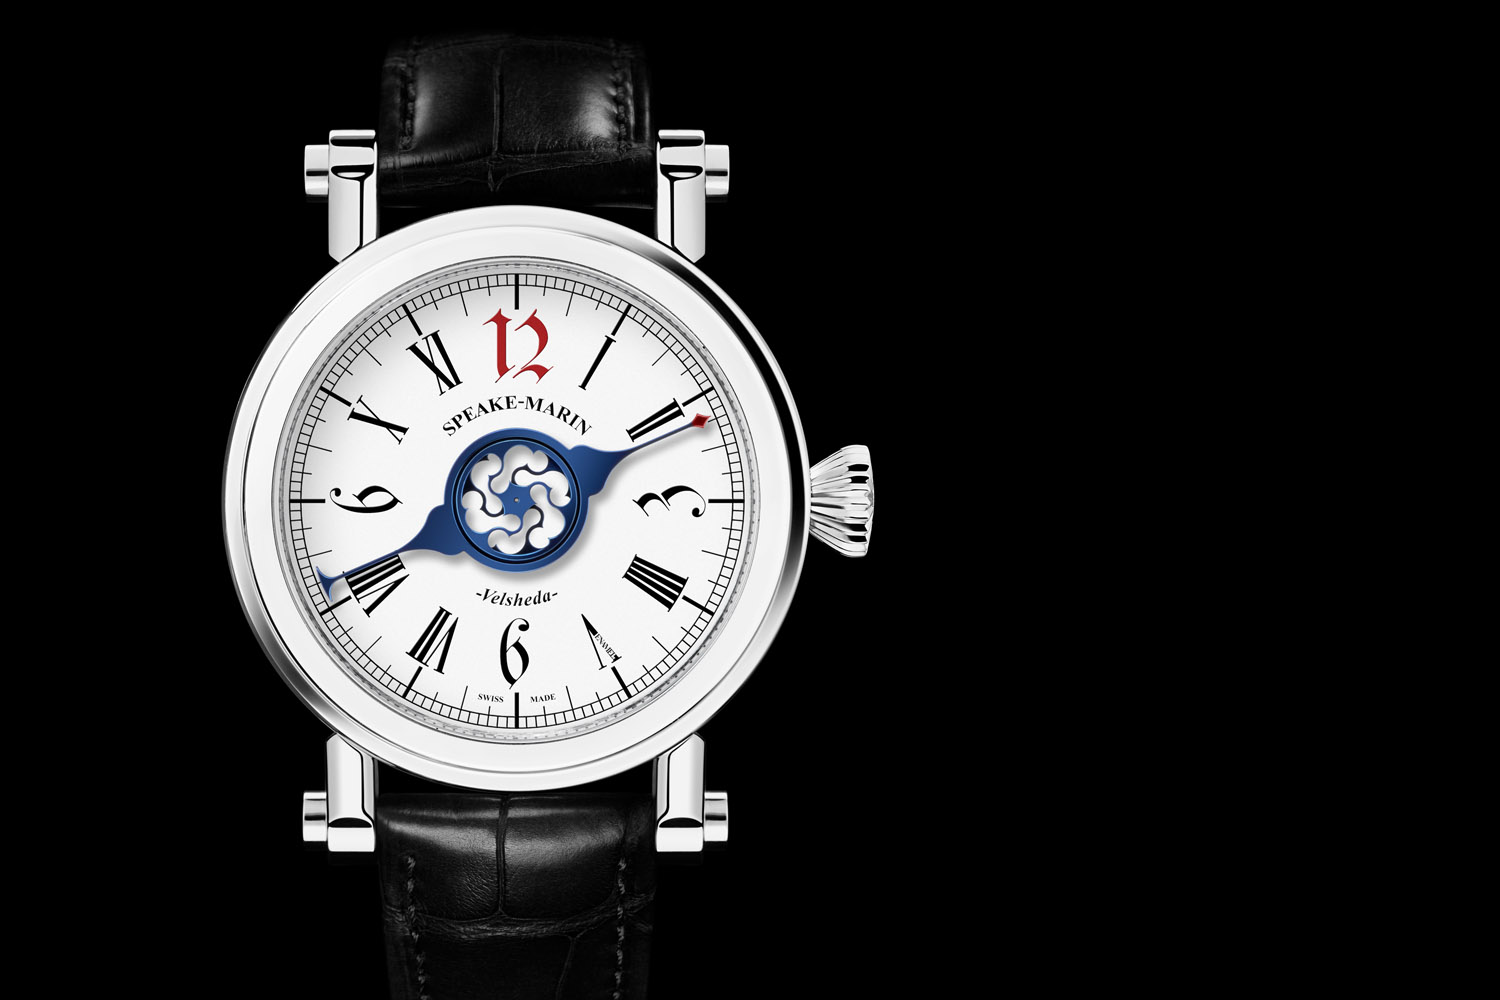 Speake-Marin Velsheda Gothic - single hand